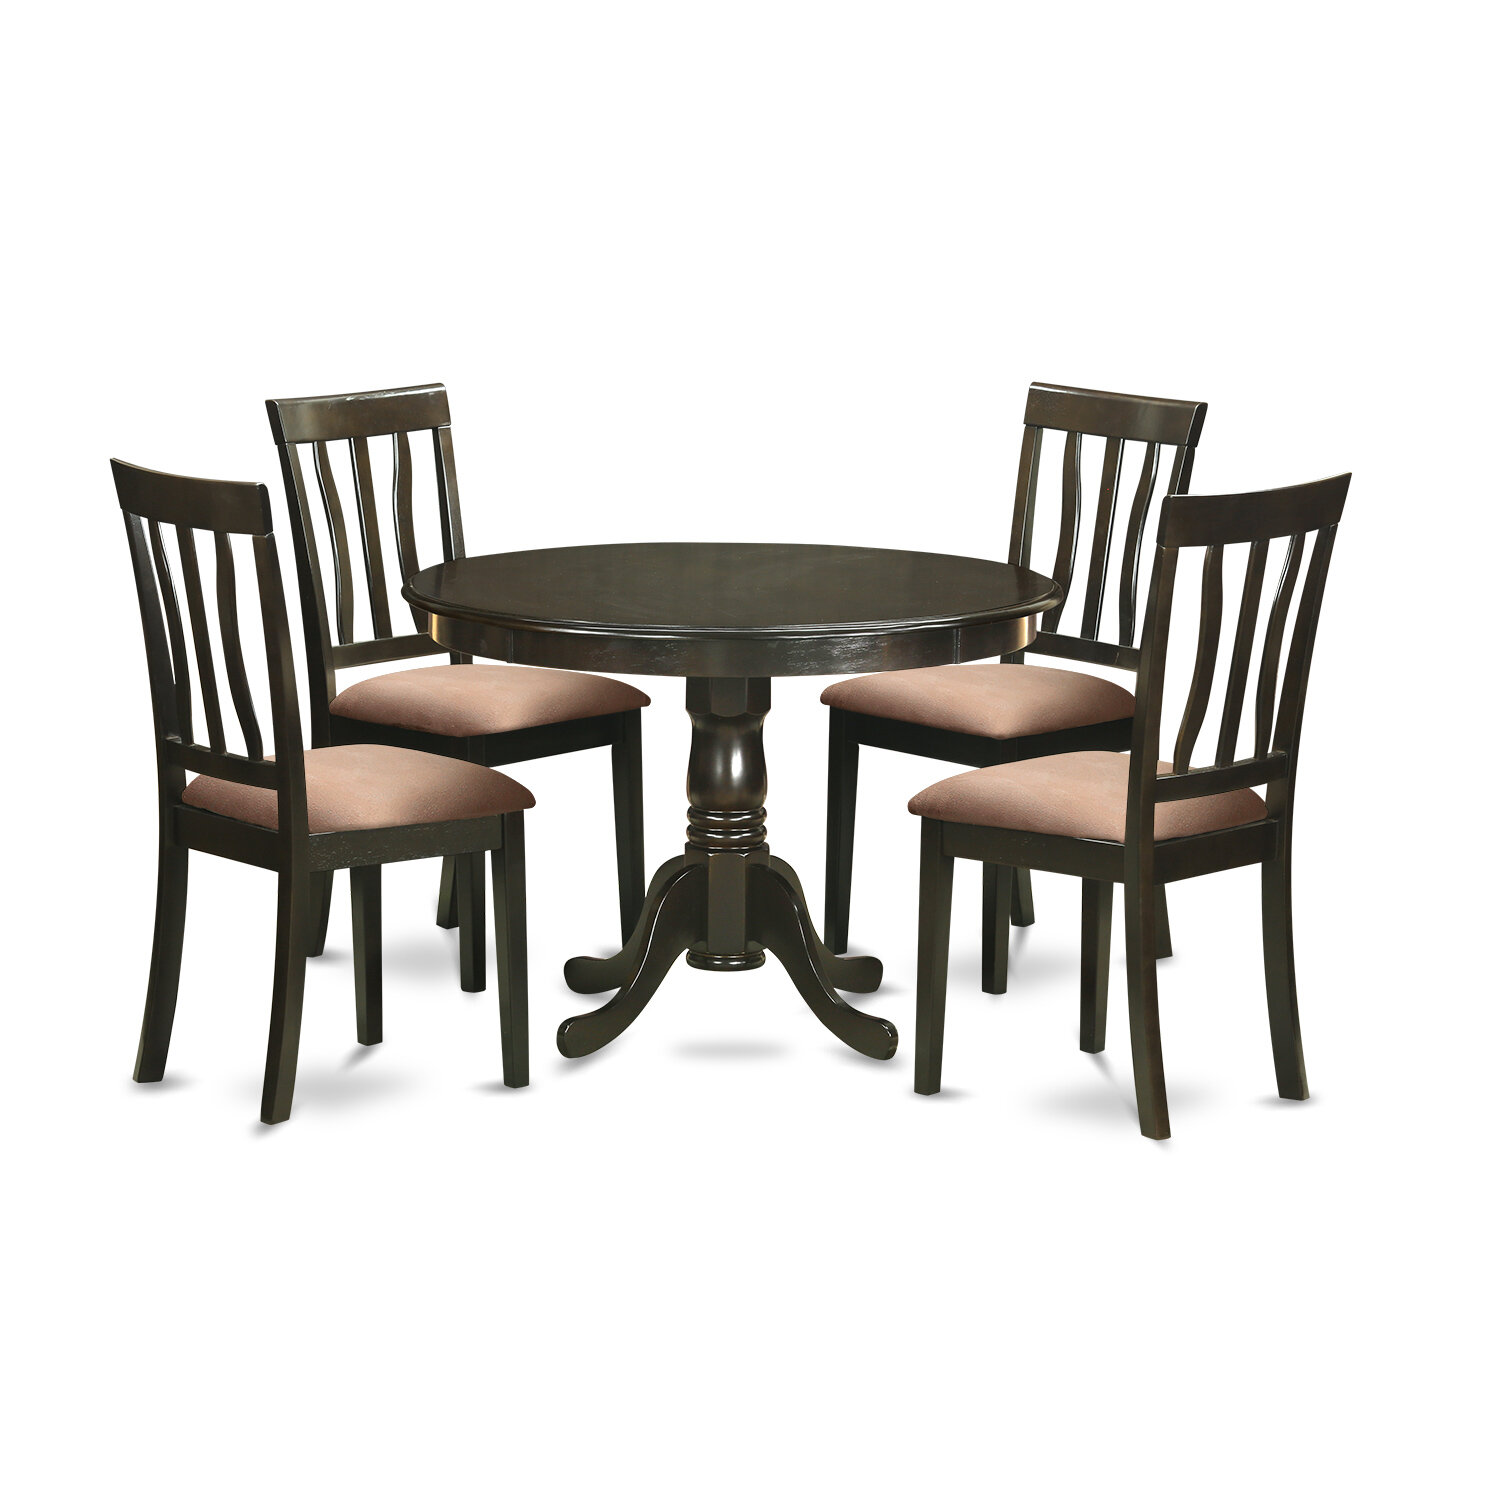 Groovy Artin 5 Piece Dining Set Onthecornerstone Fun Painted Chair Ideas Images Onthecornerstoneorg